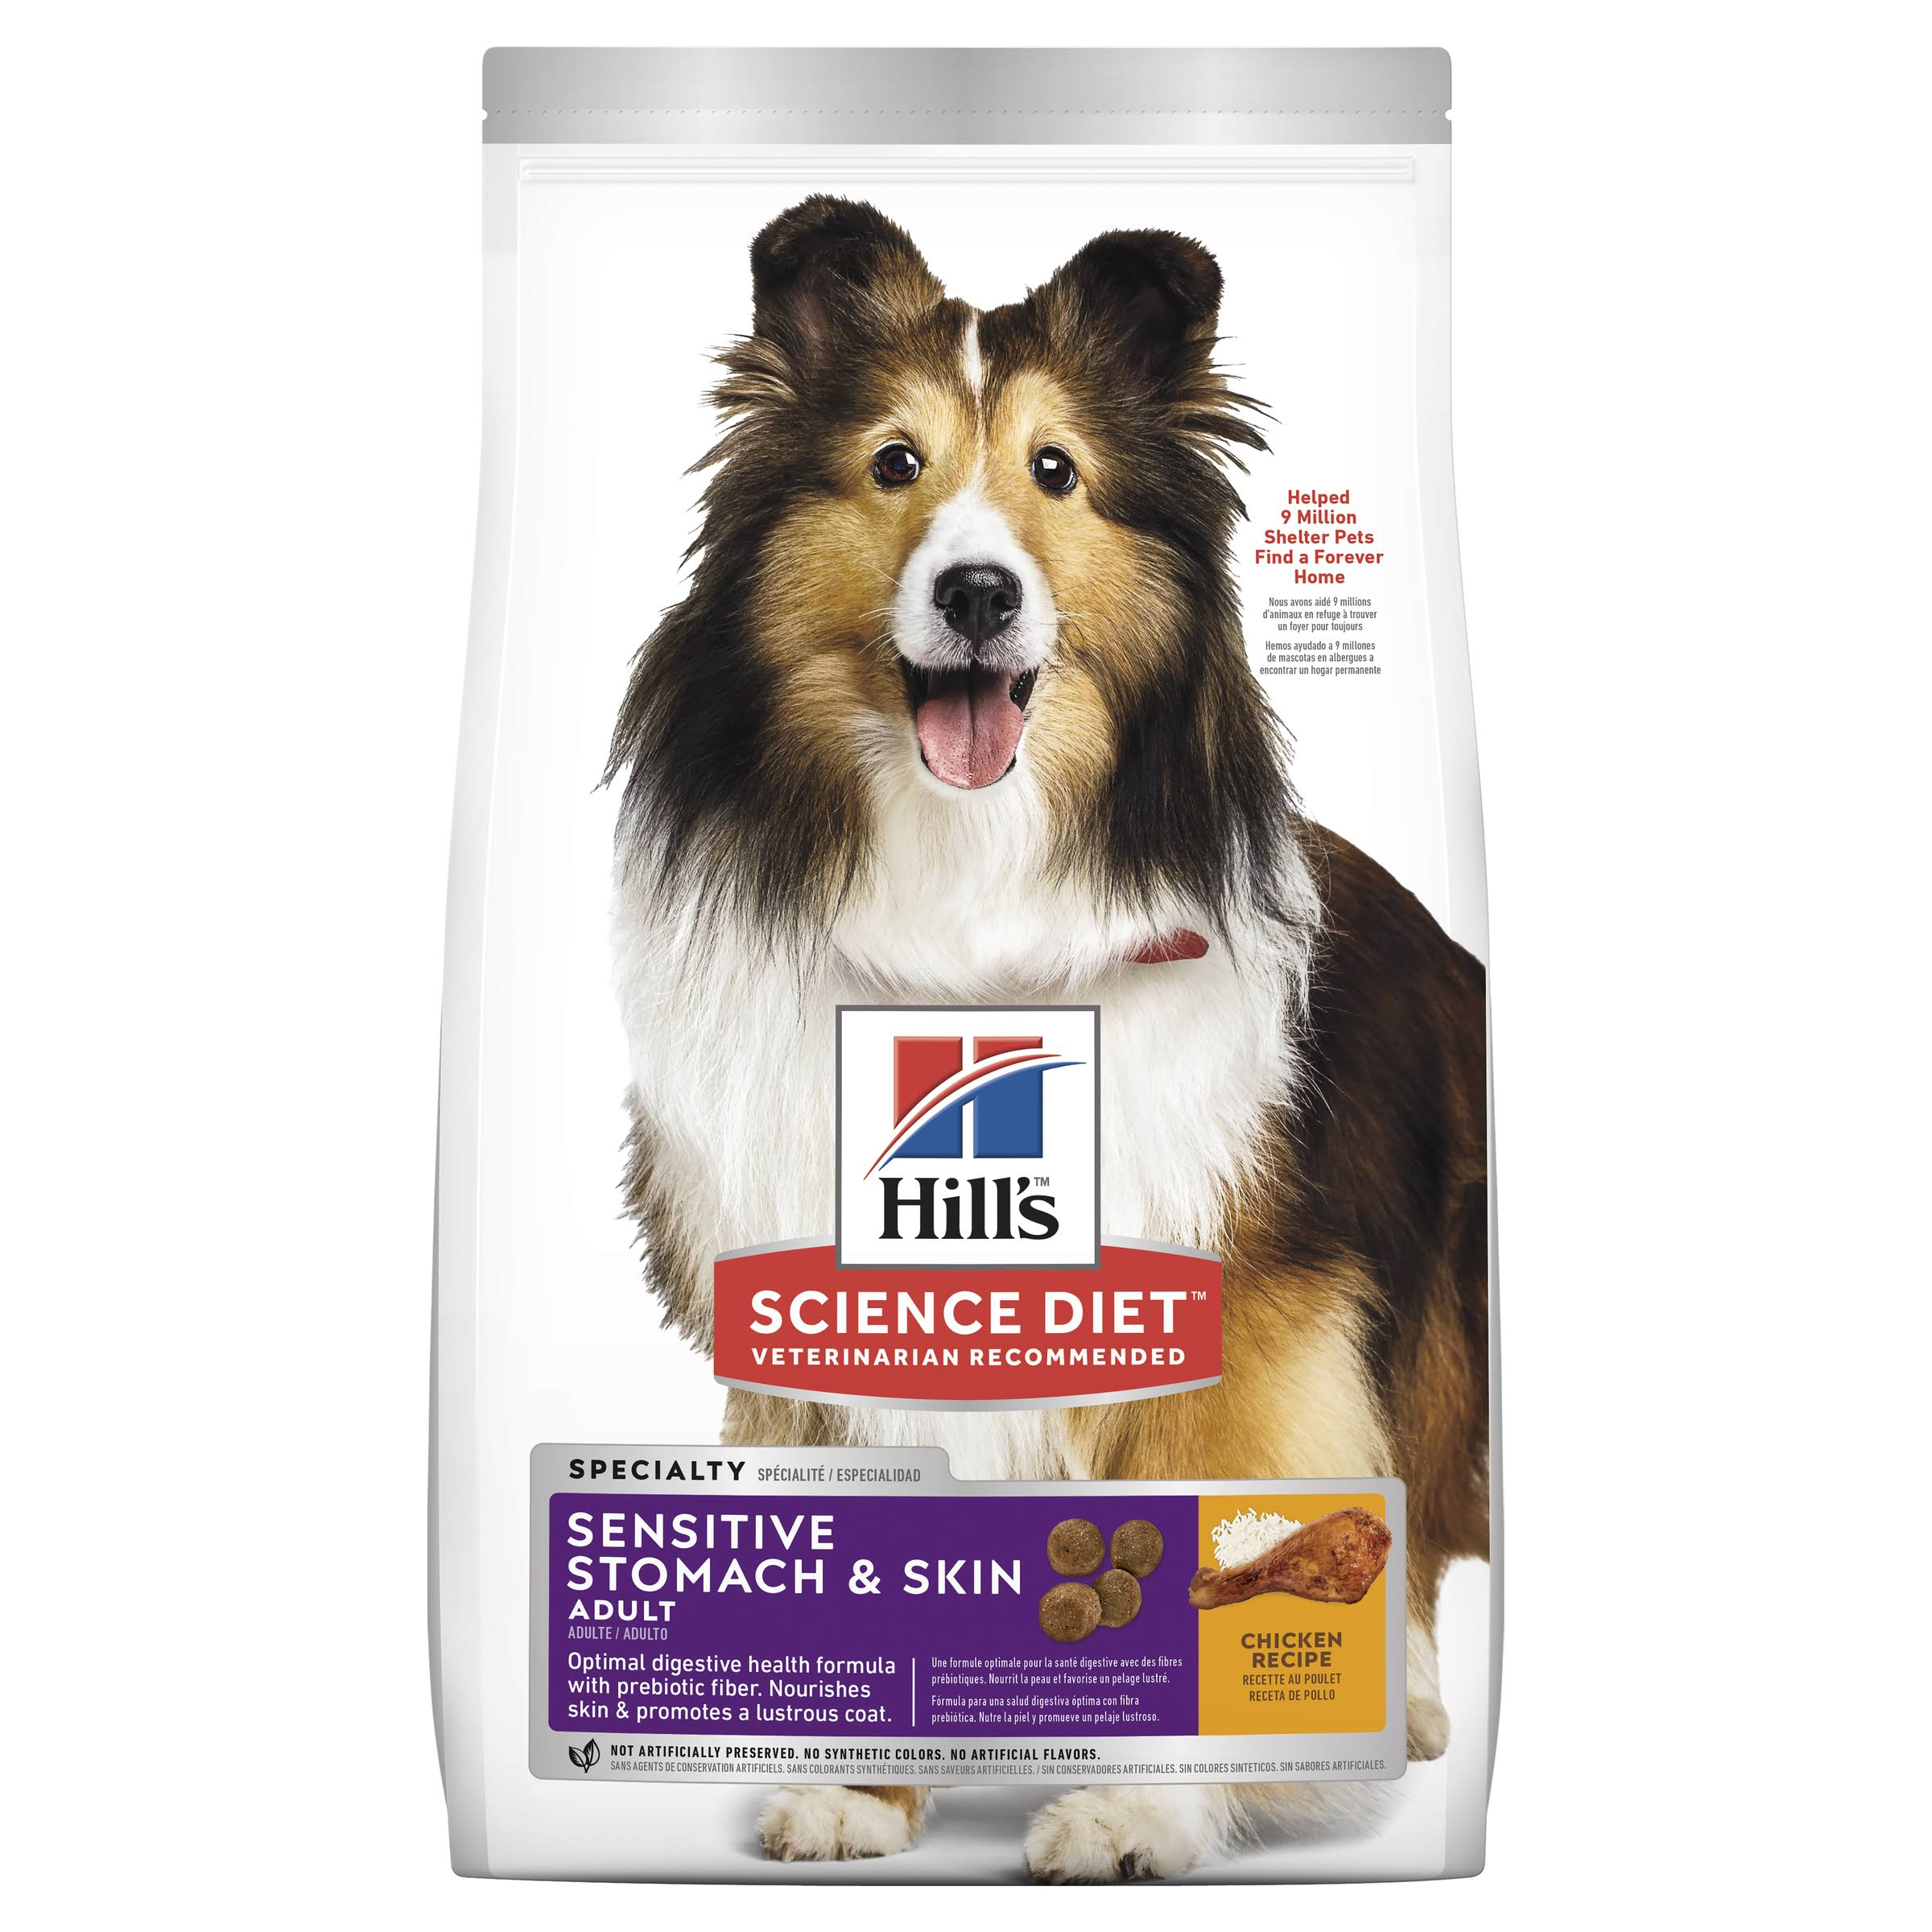 Hill's Science Diet Adult Sensitive Stomach and Skin Dry Dog Food - Chicken Meal and Barley Recipe, 4lb